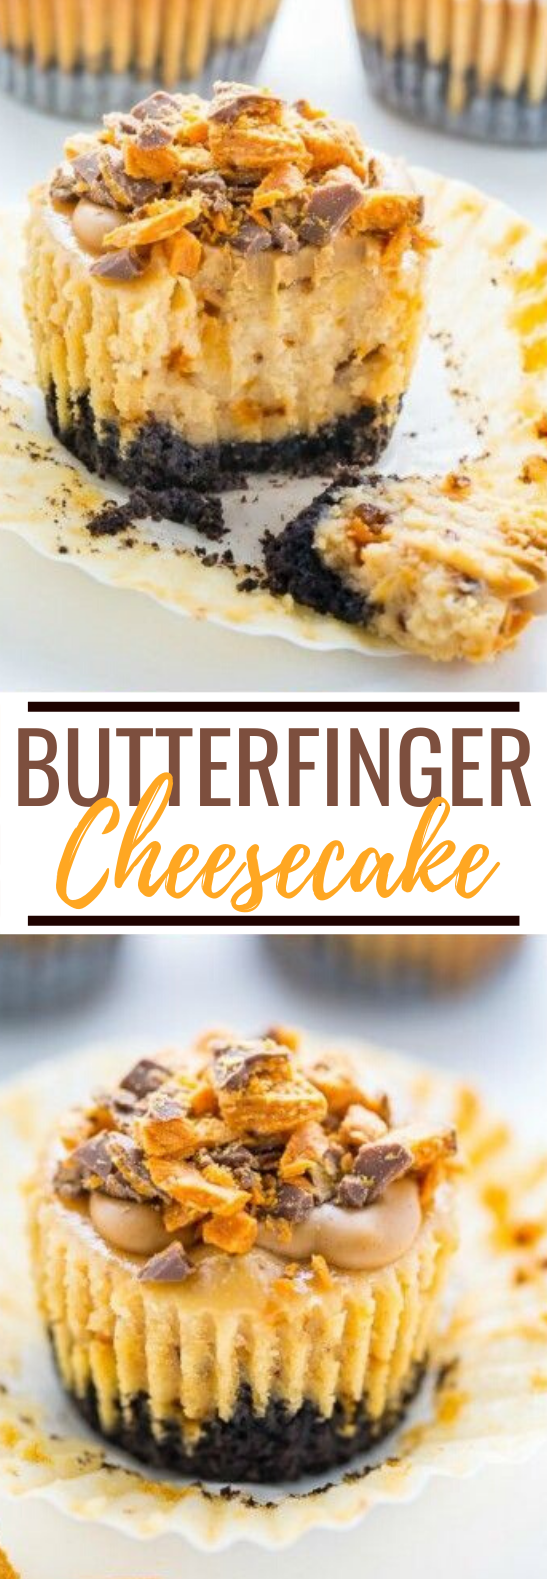 Butterfinger Cheesecake Cupcakes #cake #desserts #cupcakes #cheesecake #partyfood